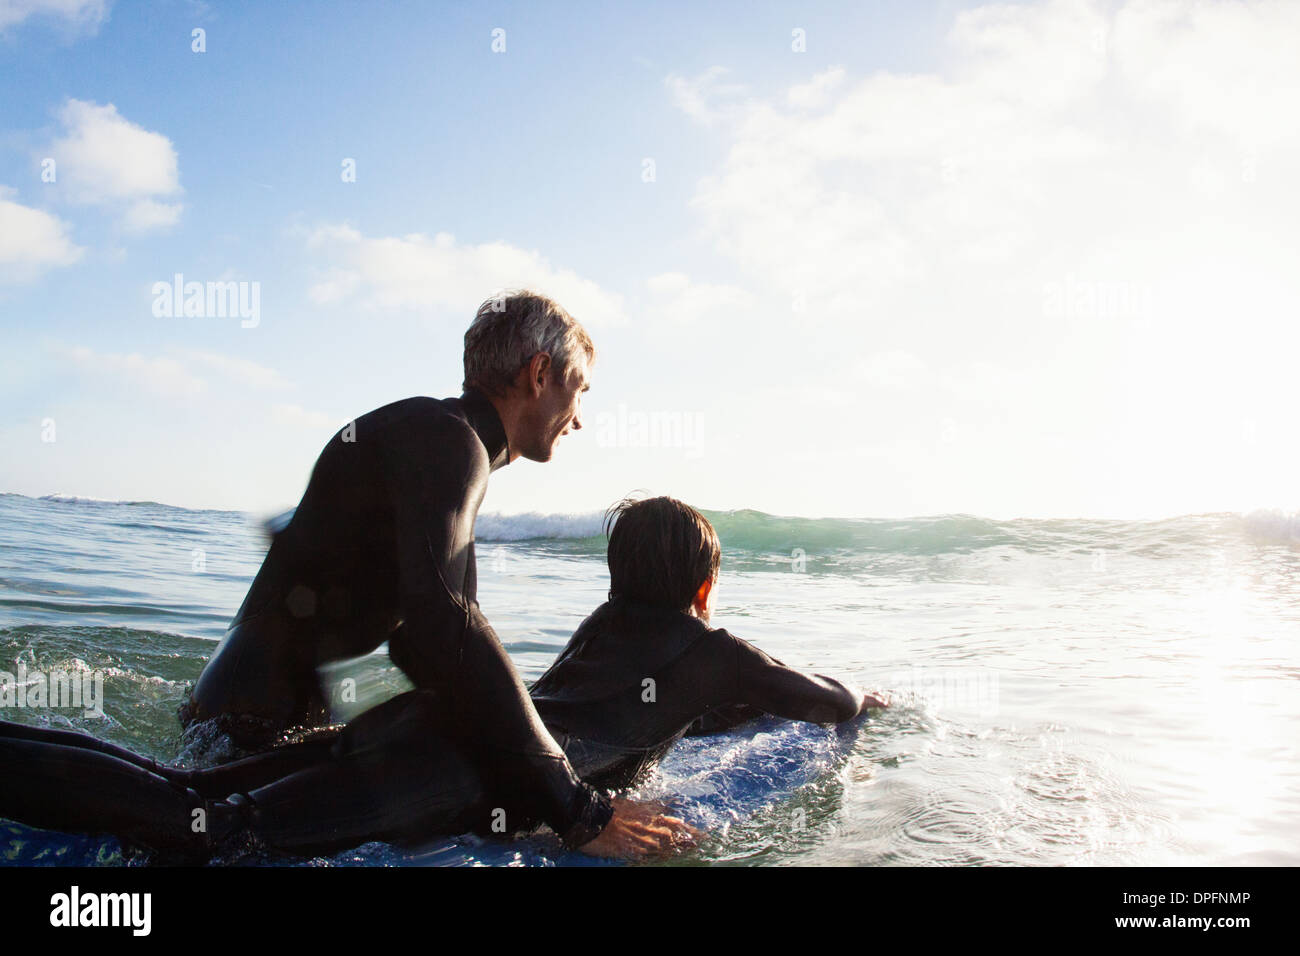 Father and son at sea with surfboard, Encinitas, California, USA - Stock Image